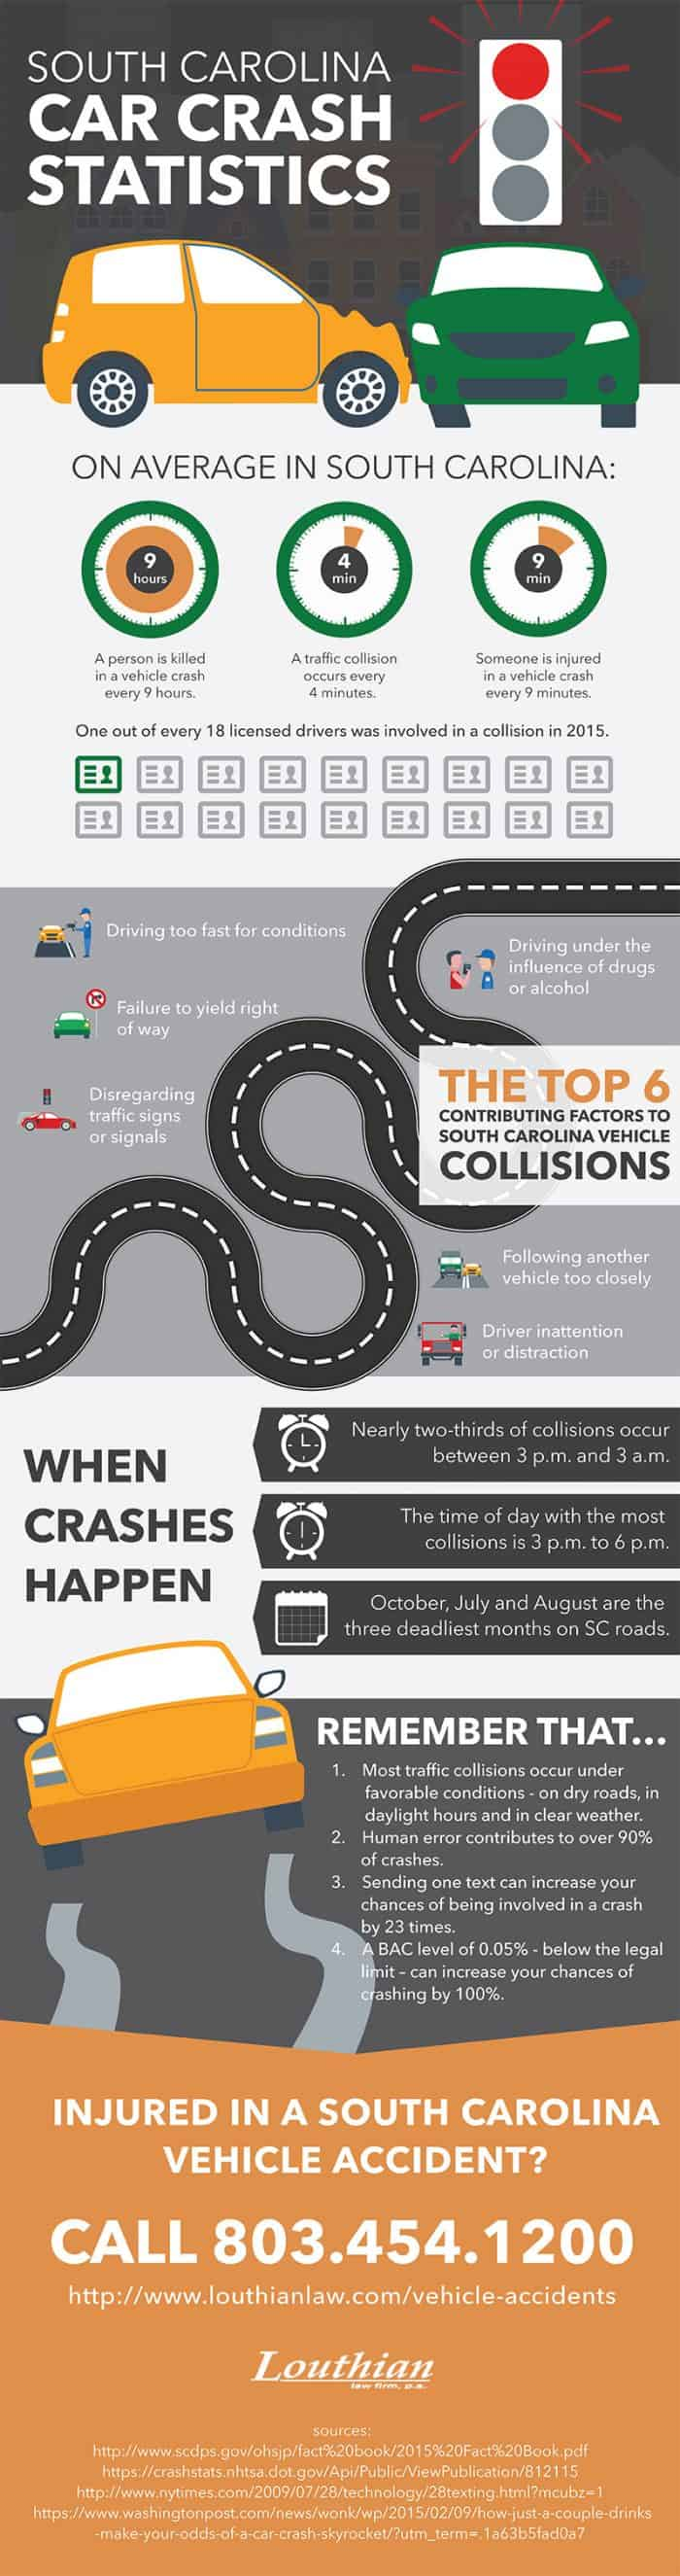 infographic describes frequency of car accidents in the U.S.